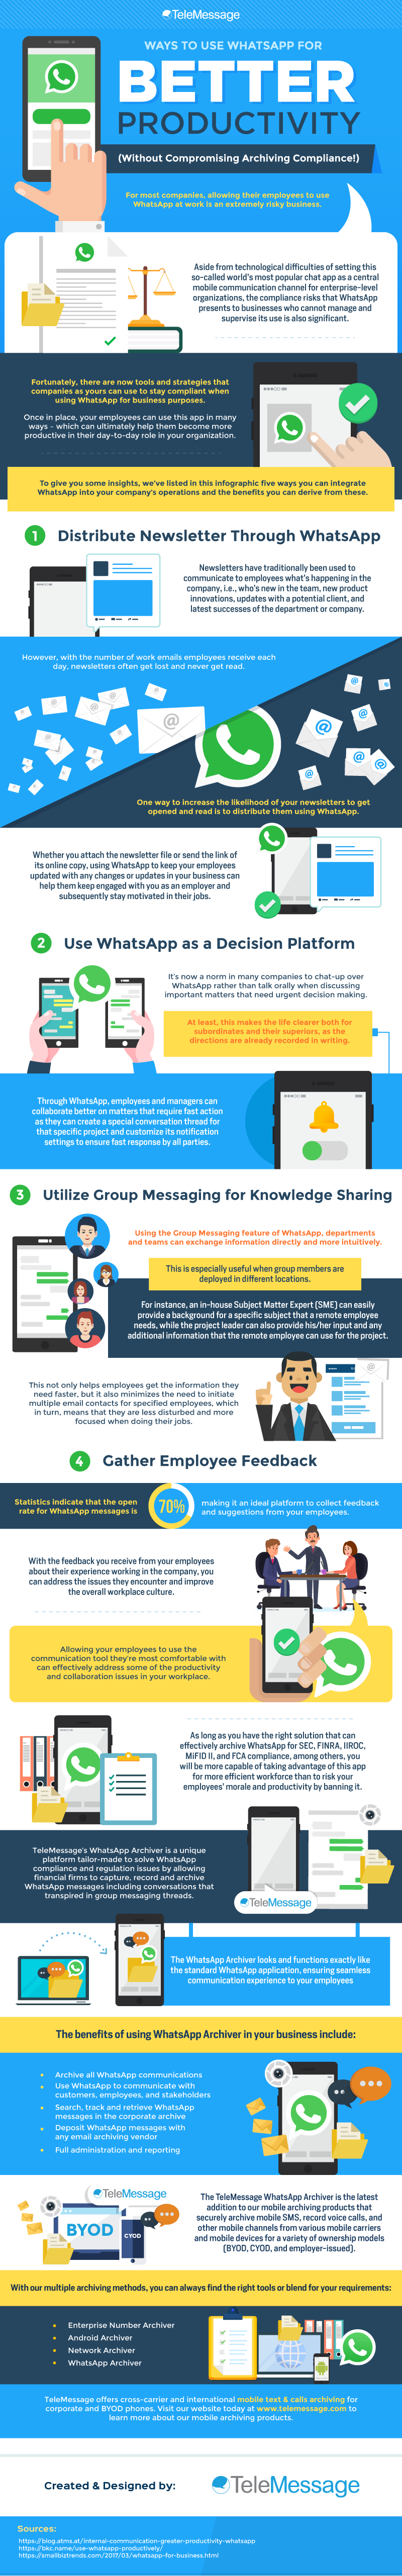 Ways to Use WhatsApp for Better Productivity